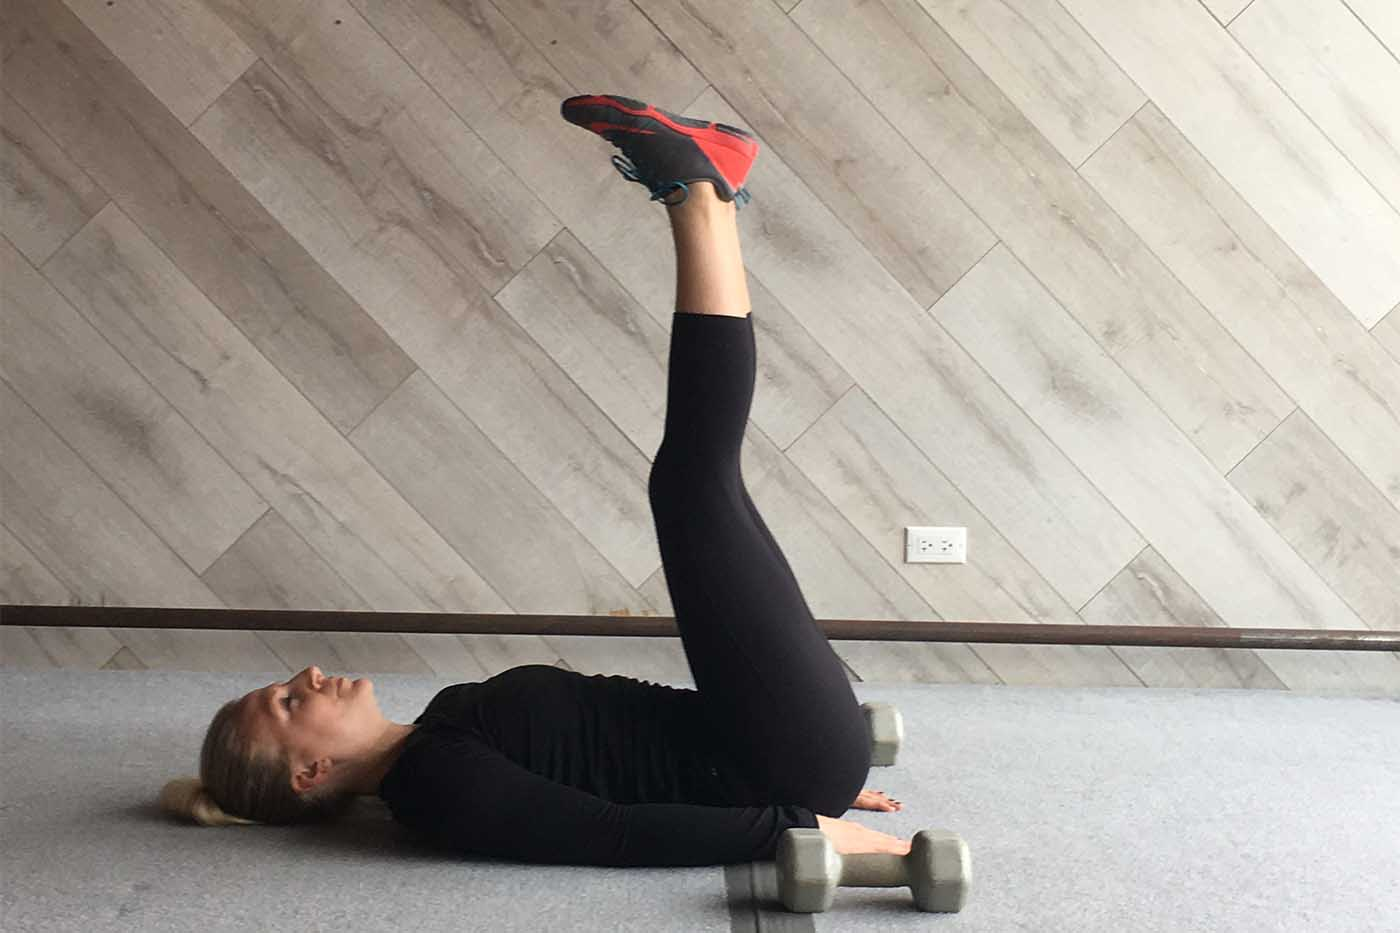 sweatlife_30-minute-workout_2